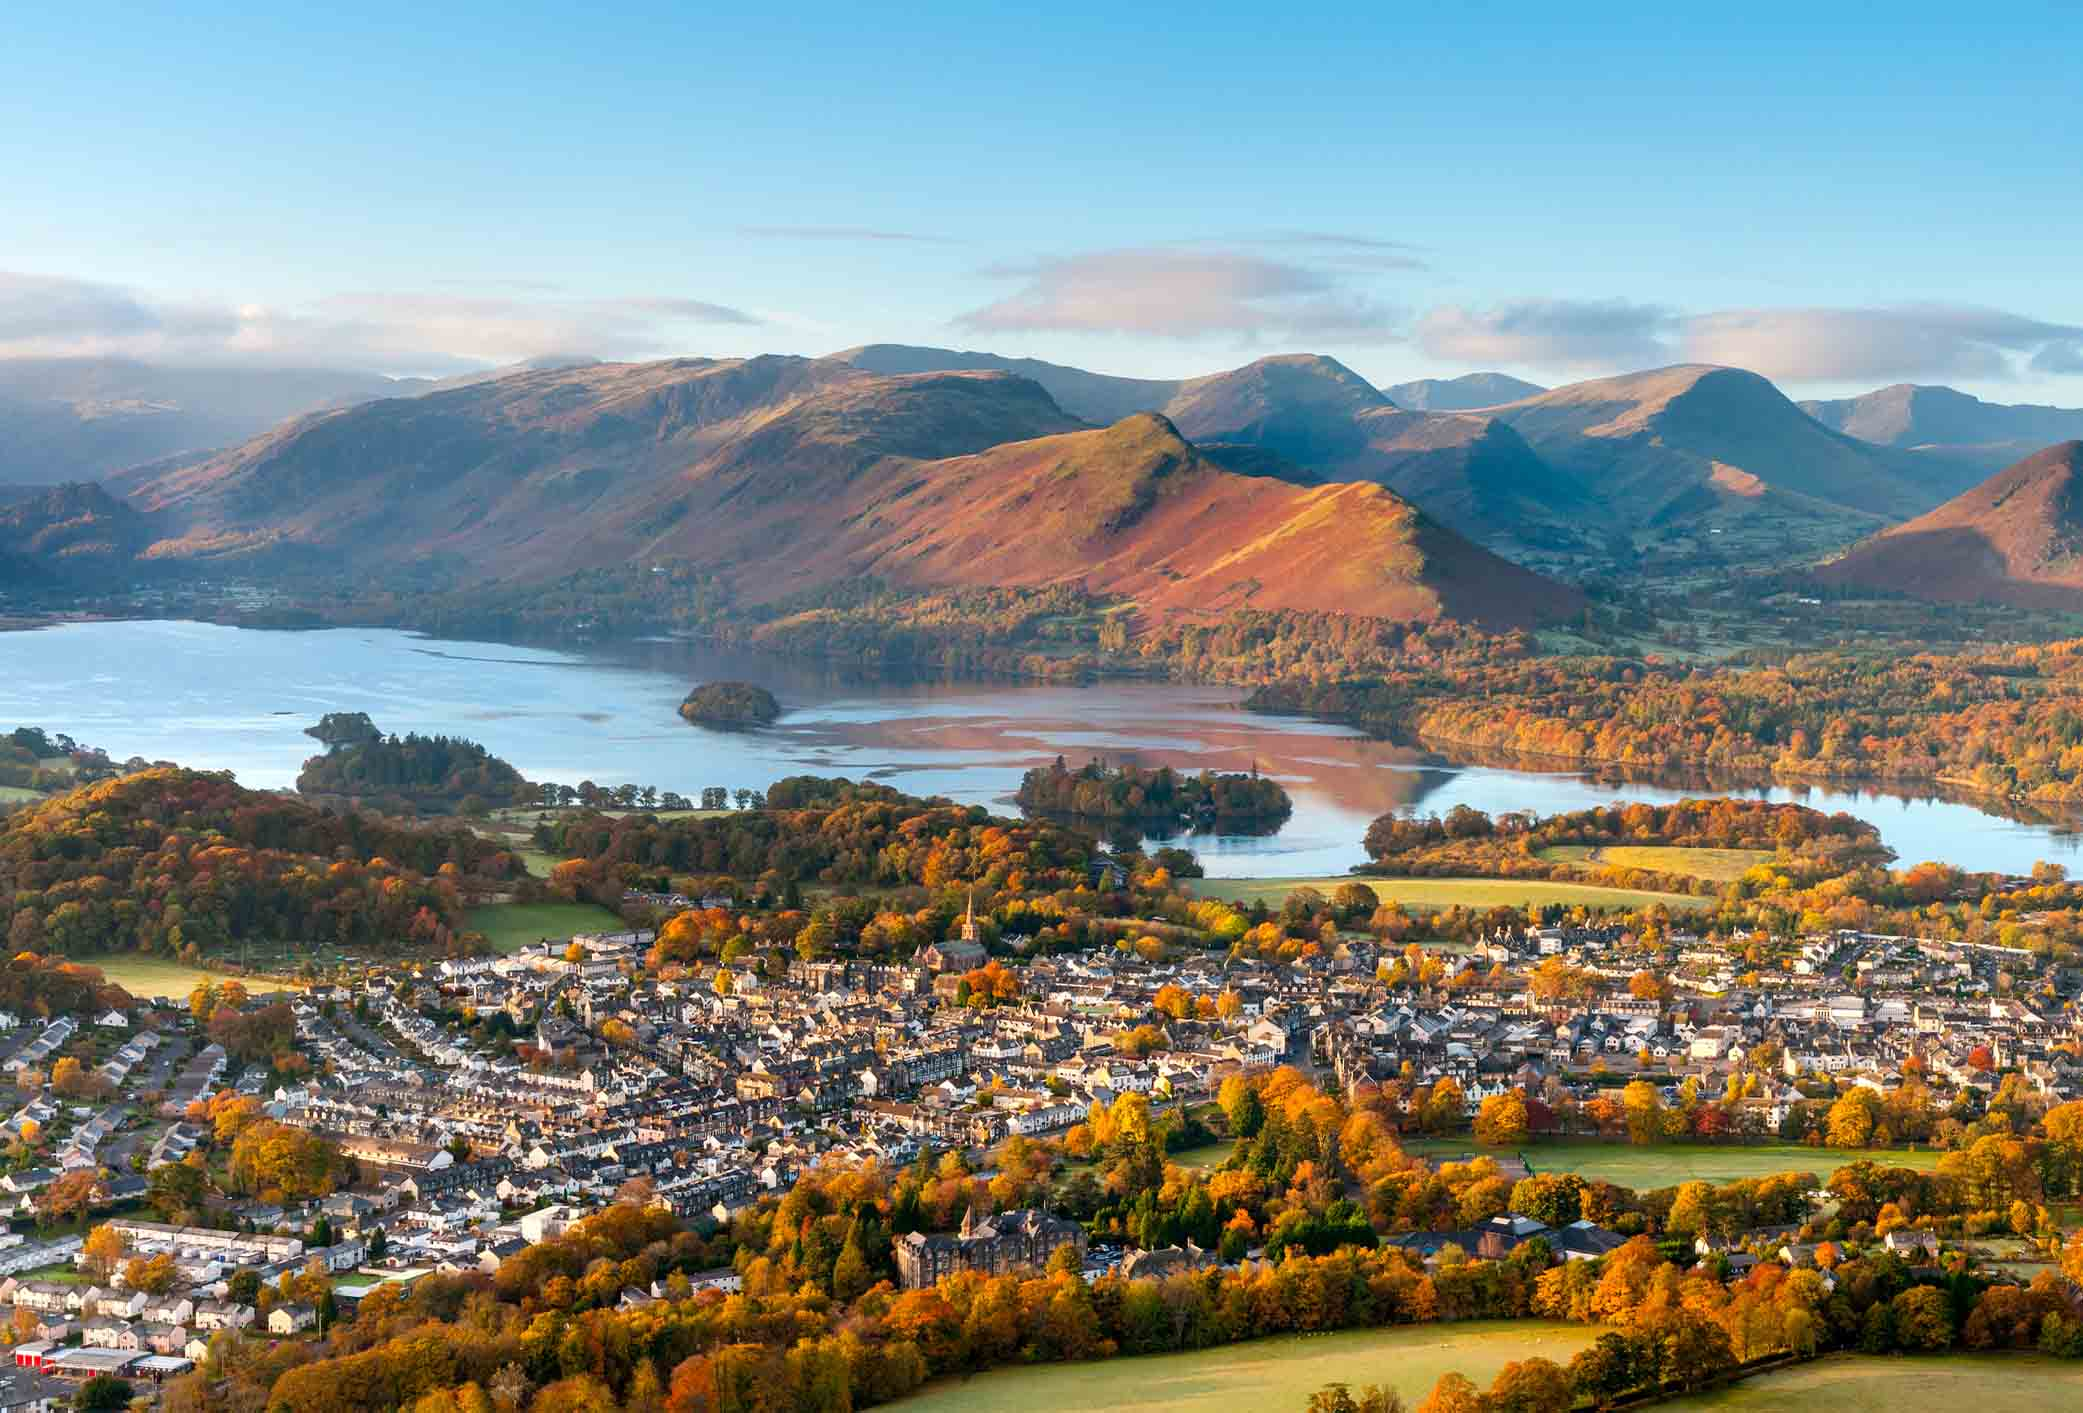 spectacular view of the lakes in the lake district